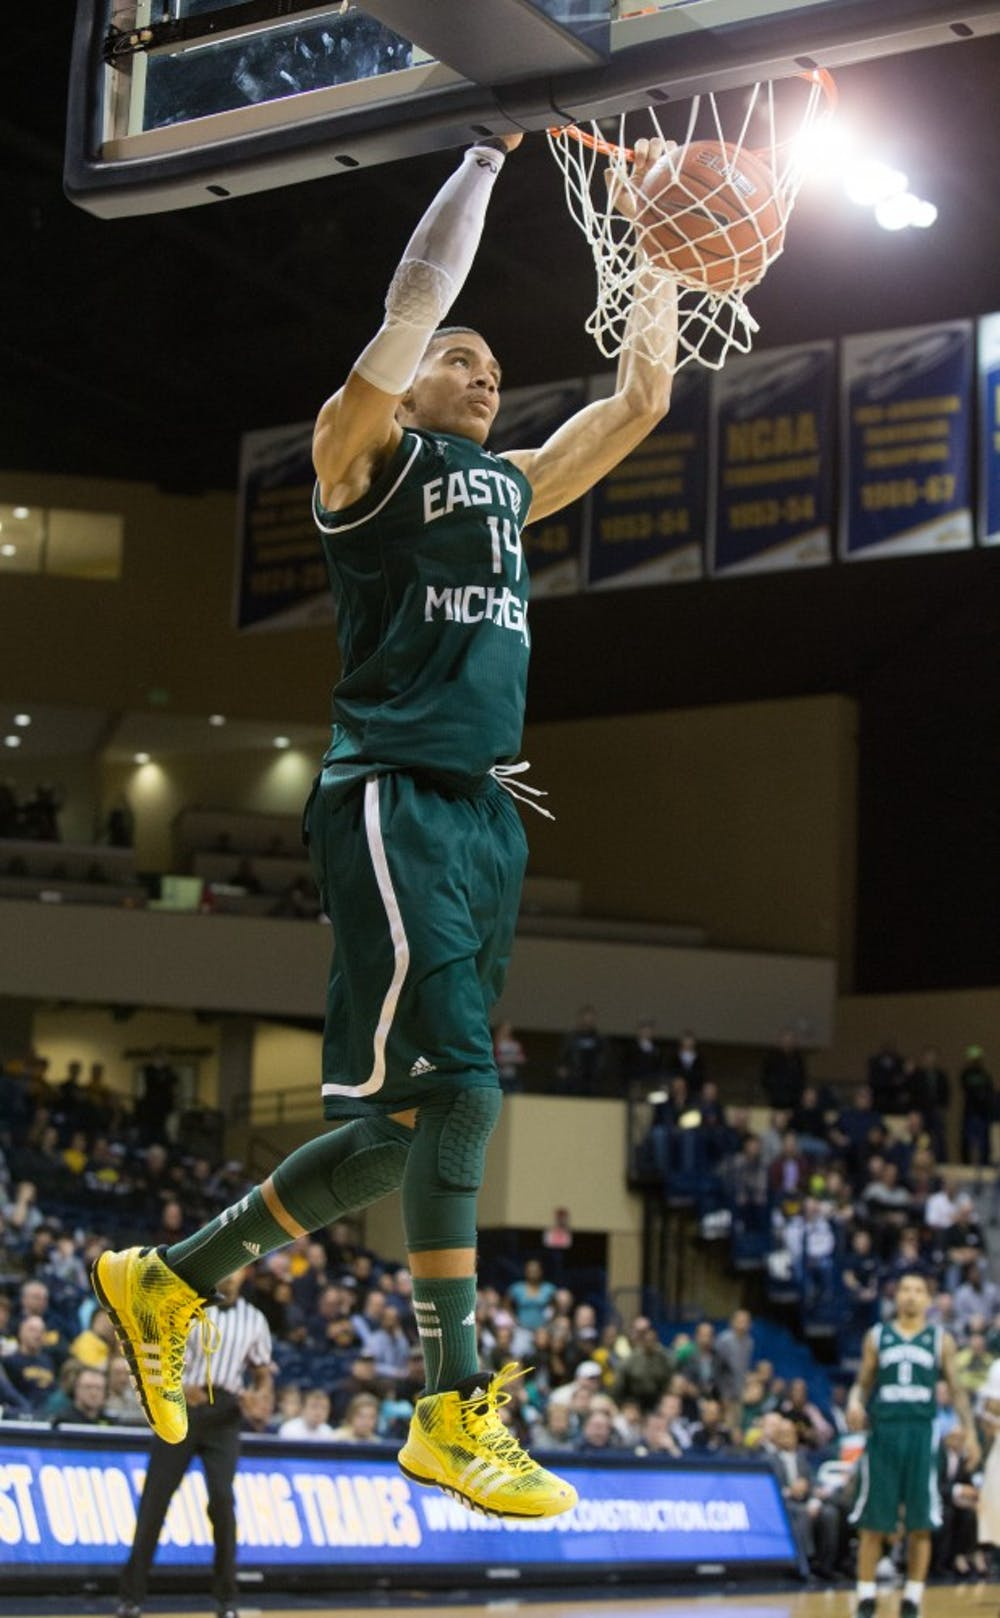 Ward named to the All-MAC Third Team